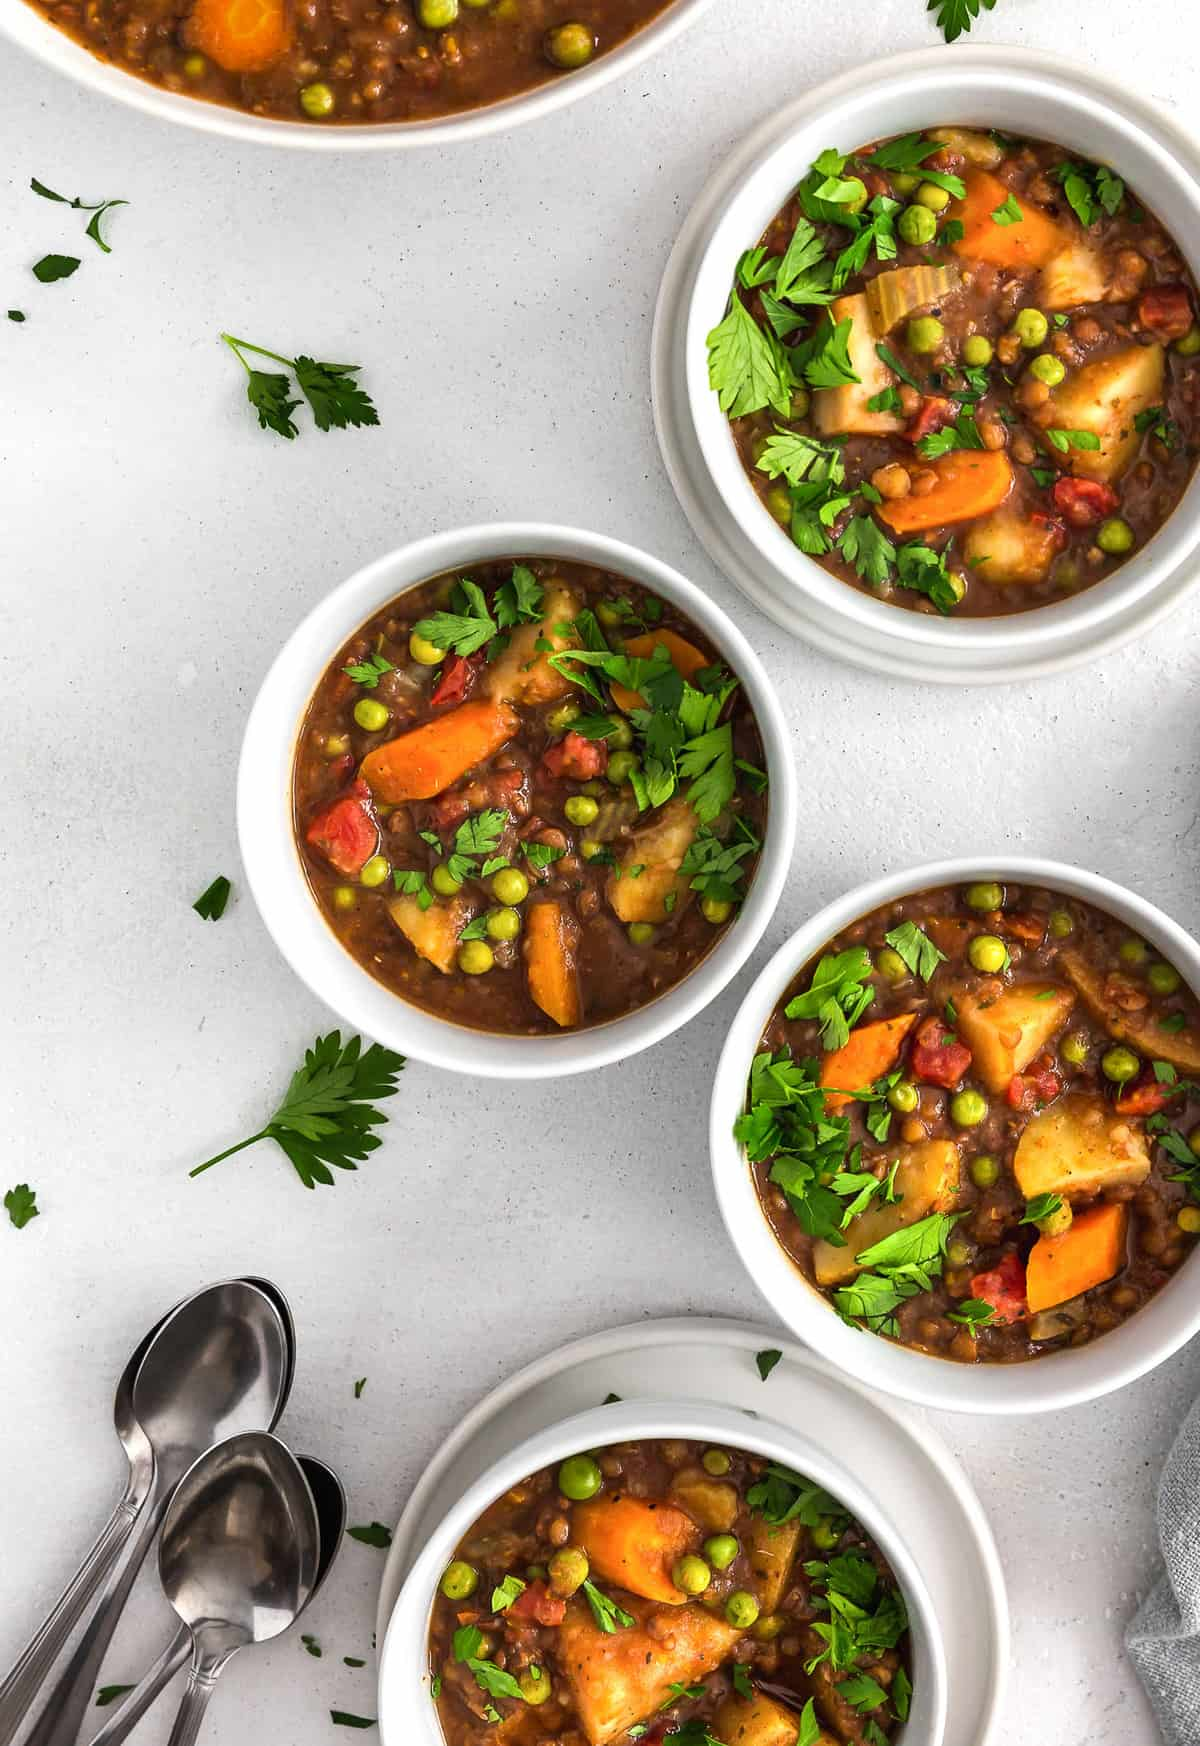 Instant Pot Beef Stew, plant based, vegan, vegetarian, whole food plant based, gluten free, recipe, wfpb, healthy, healthy vegan, oil free, no refined sugar, no oil, refined sugar free, dairy free, lentils, stew, dinner, Instant Pot